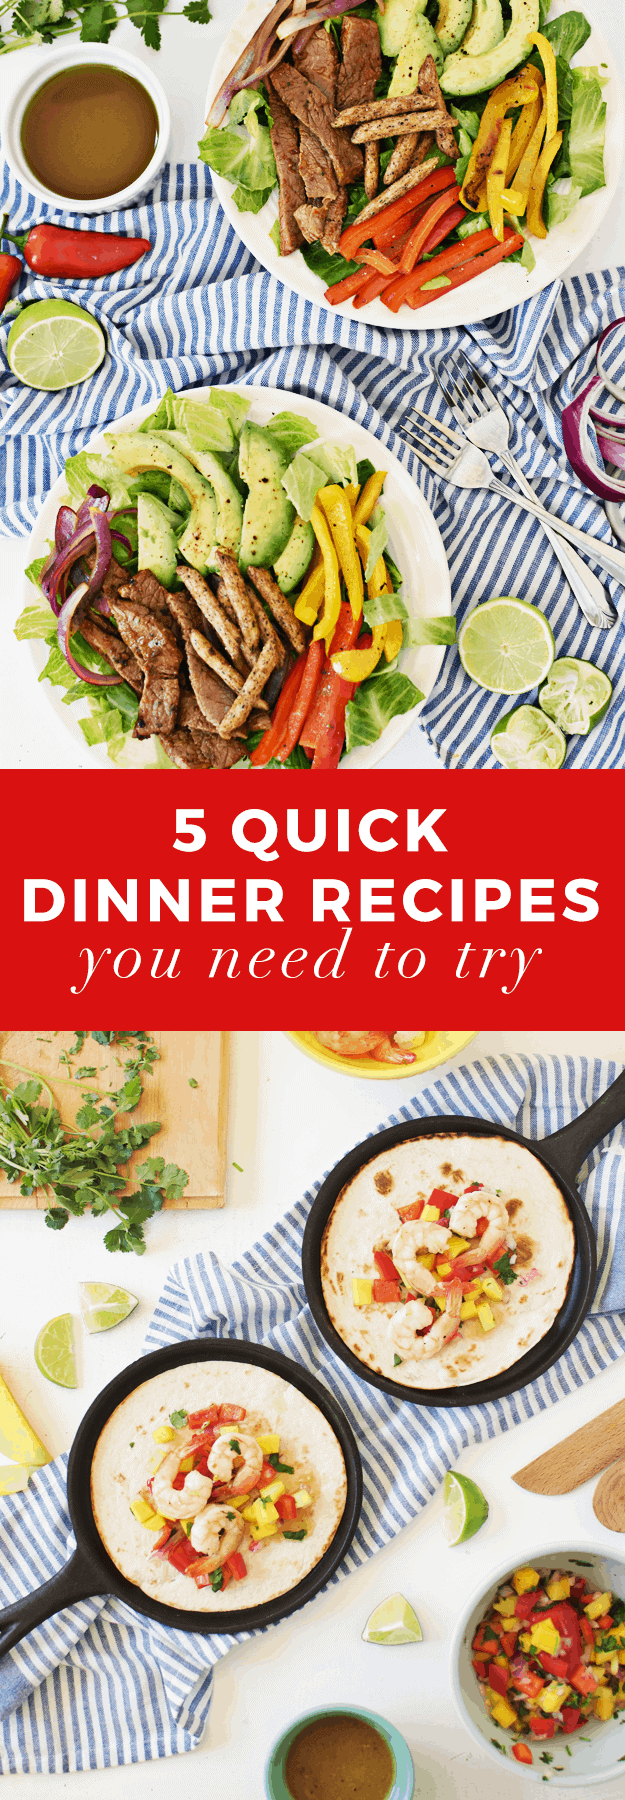 5 Quick Dinner Recipes You Need To Try | The Butter Half